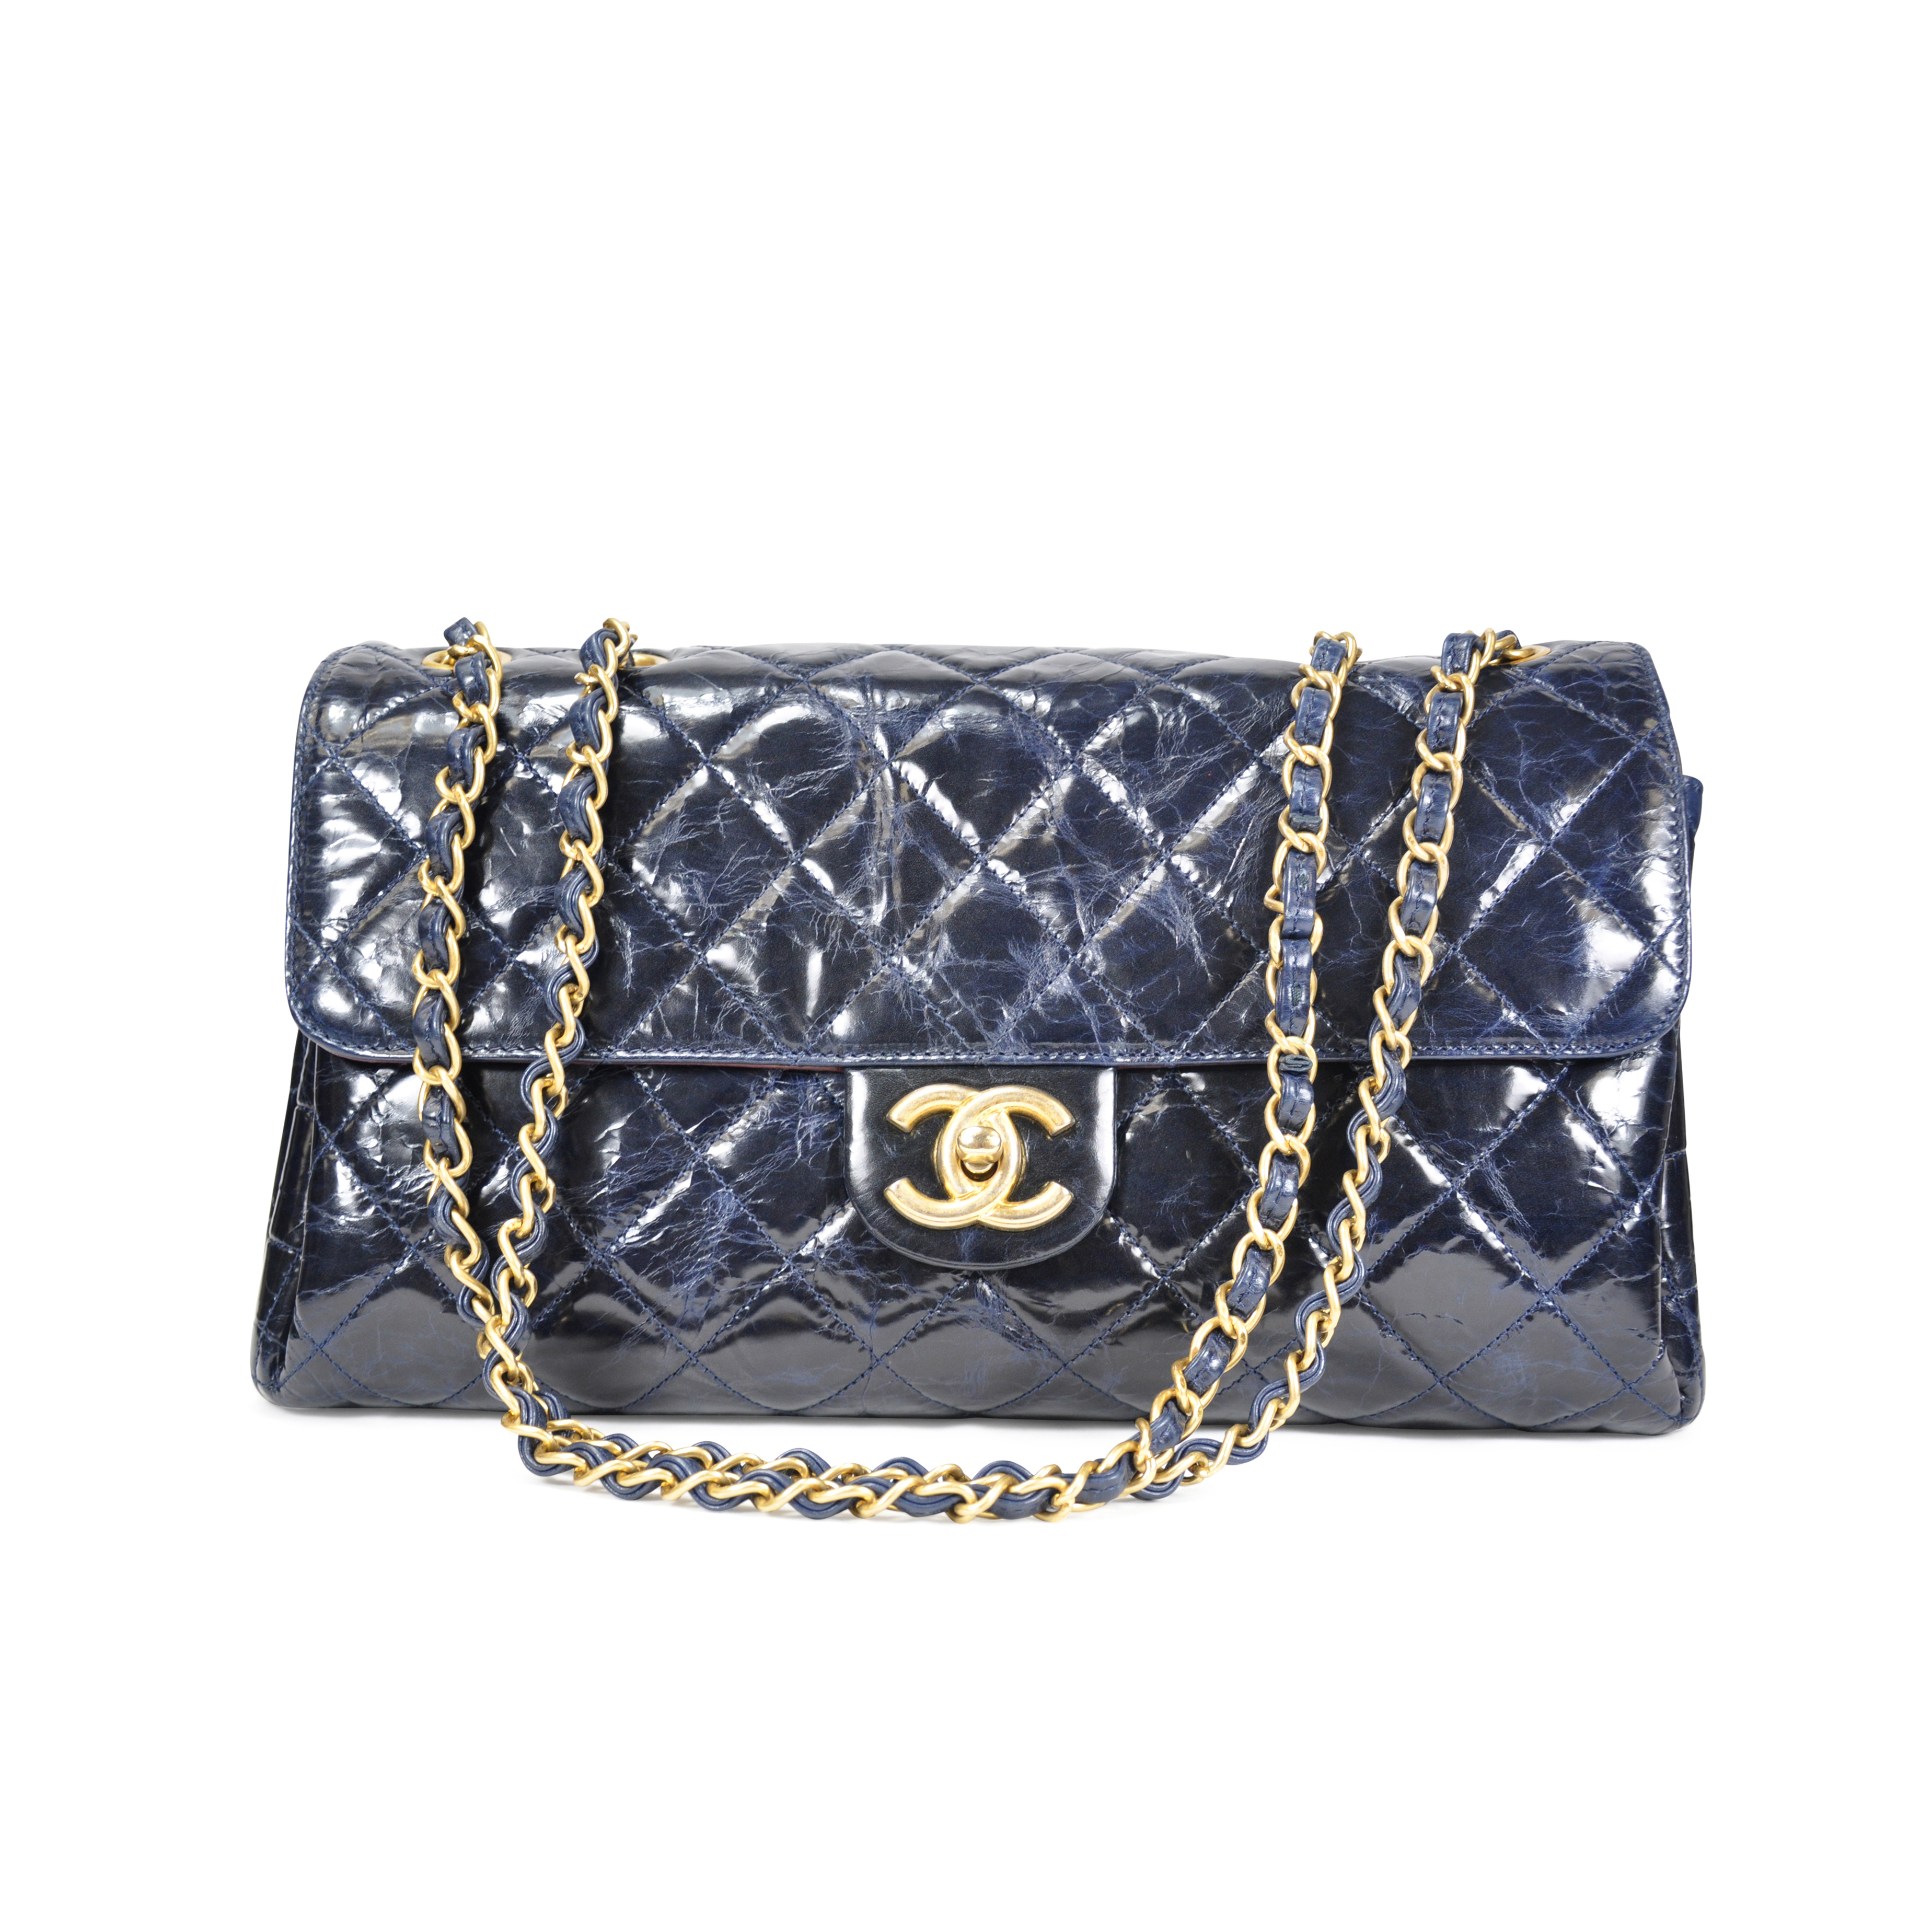 b625cdfb7aaf Authentic Second Hand Chanel Glazed Calfskin Classic Flap Style Bag  (PSS-062-00008) | THE FIFTH COLLECTION